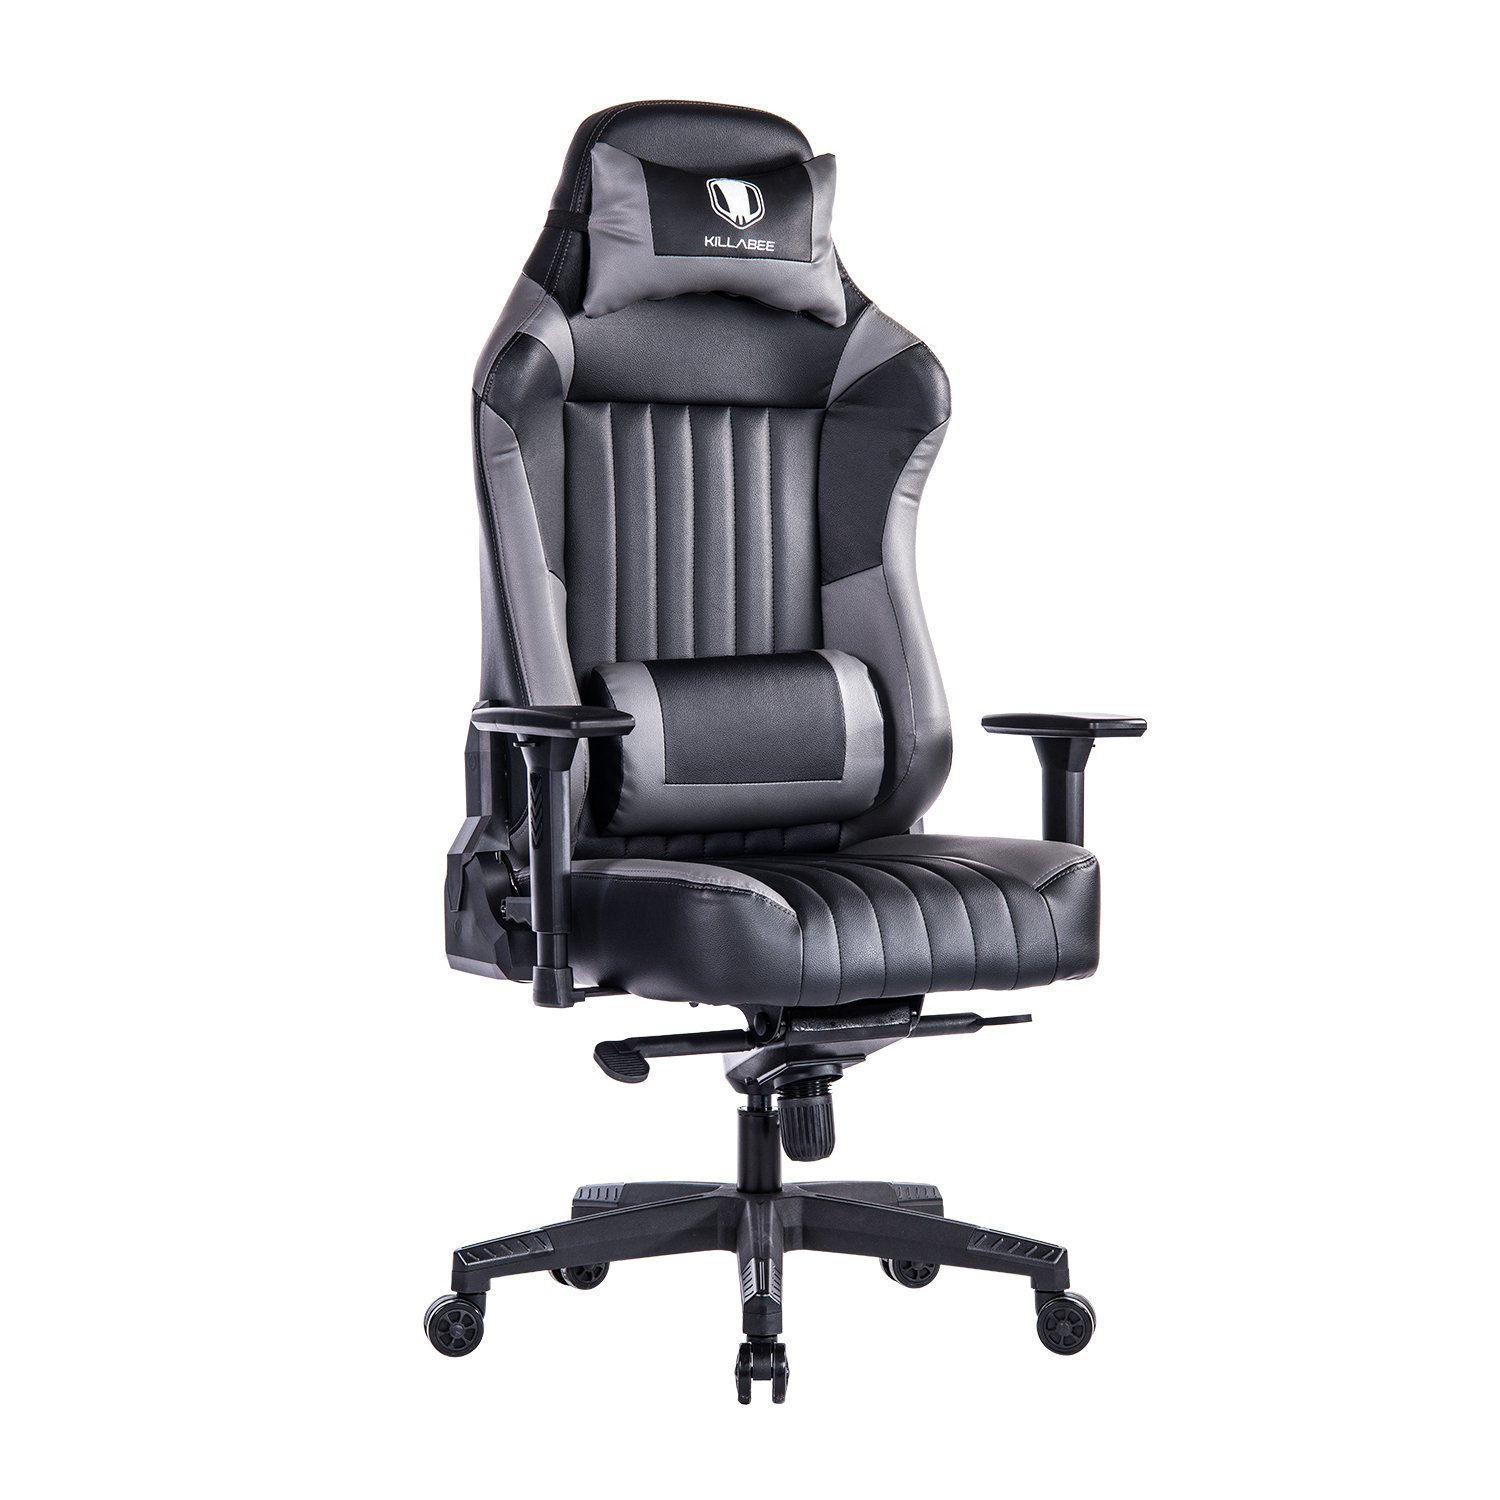 KILLABEE Big and Tall 440lb Gaming Chair - Adjustable Tilt, Back Angle and 3D Arms Ergonomic High-Back Racing Leather Executive Computer Desk Office Chair Detachable Headrest and Lumbar Support, Grey